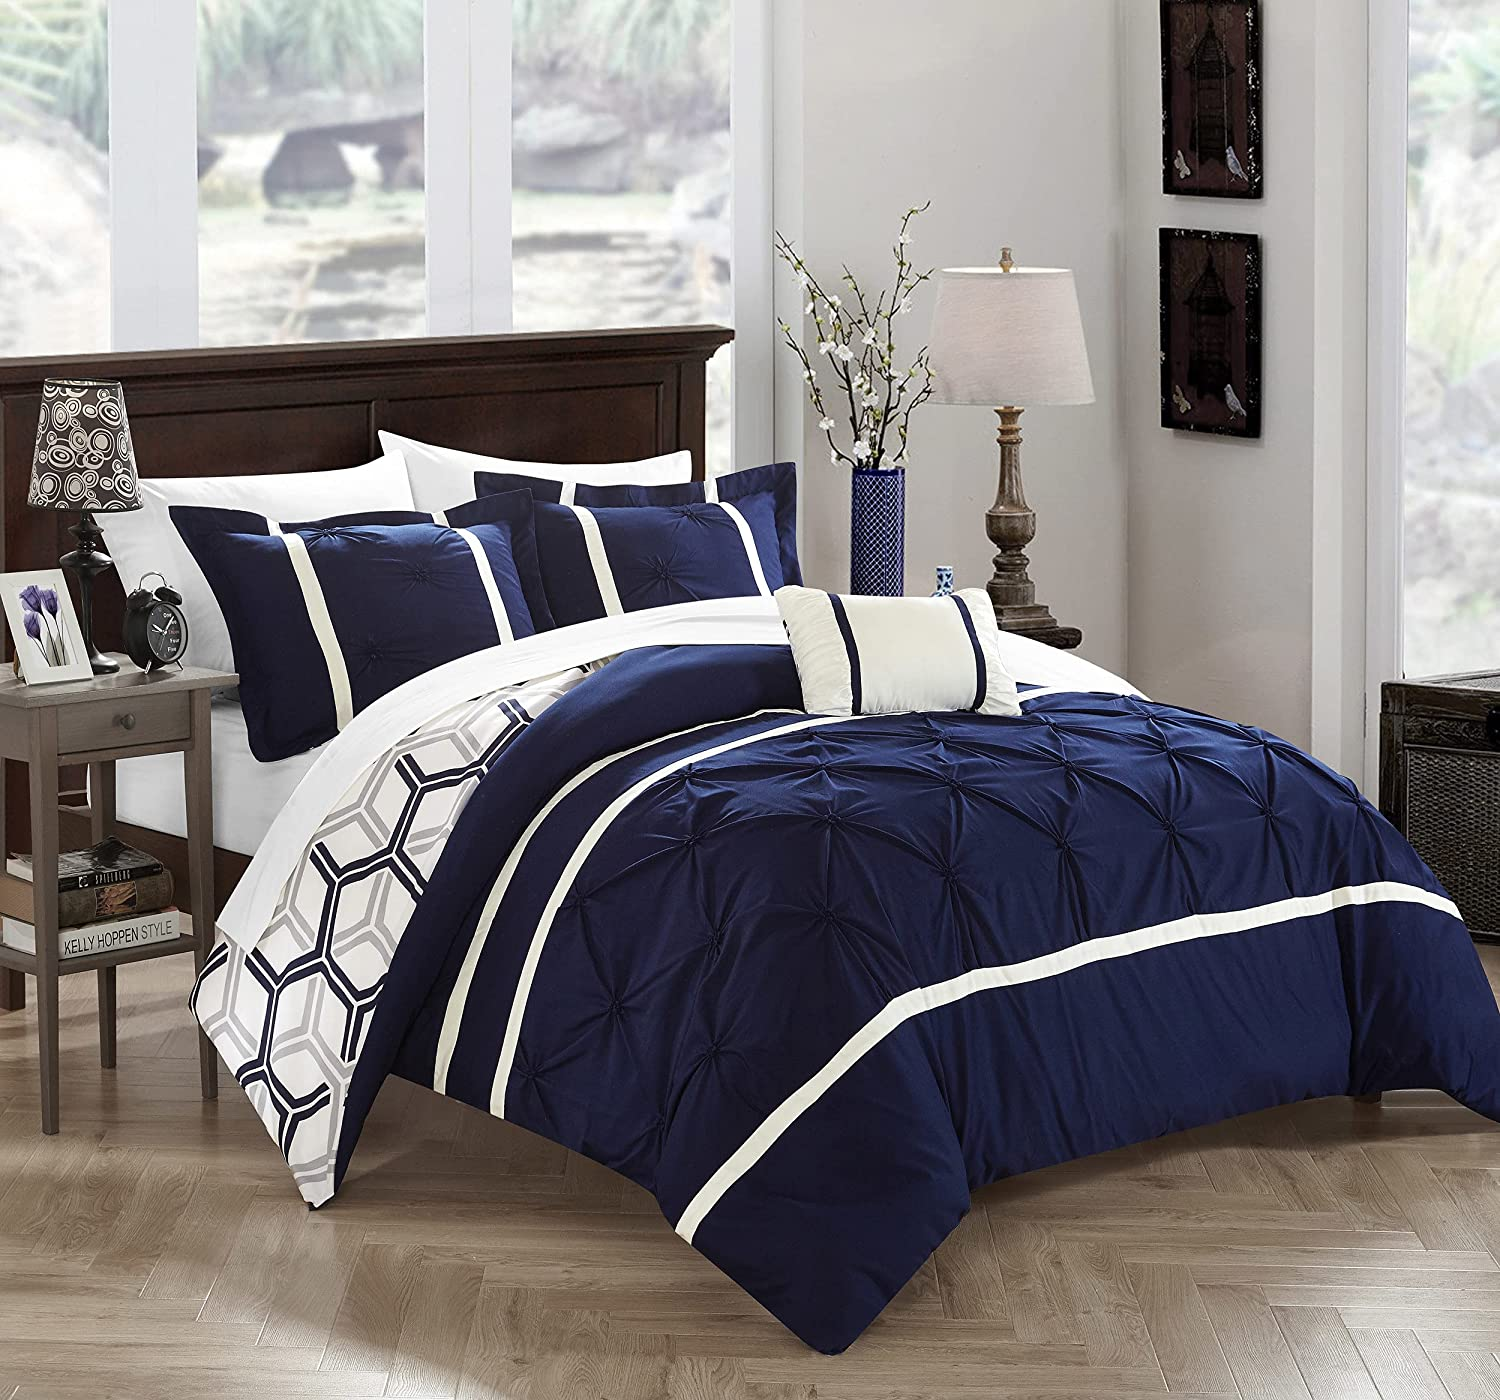 Chic Home 4 New product type Piece Marcia Pinch Ge Max 53% OFF and Reversible Pleated Ruffled